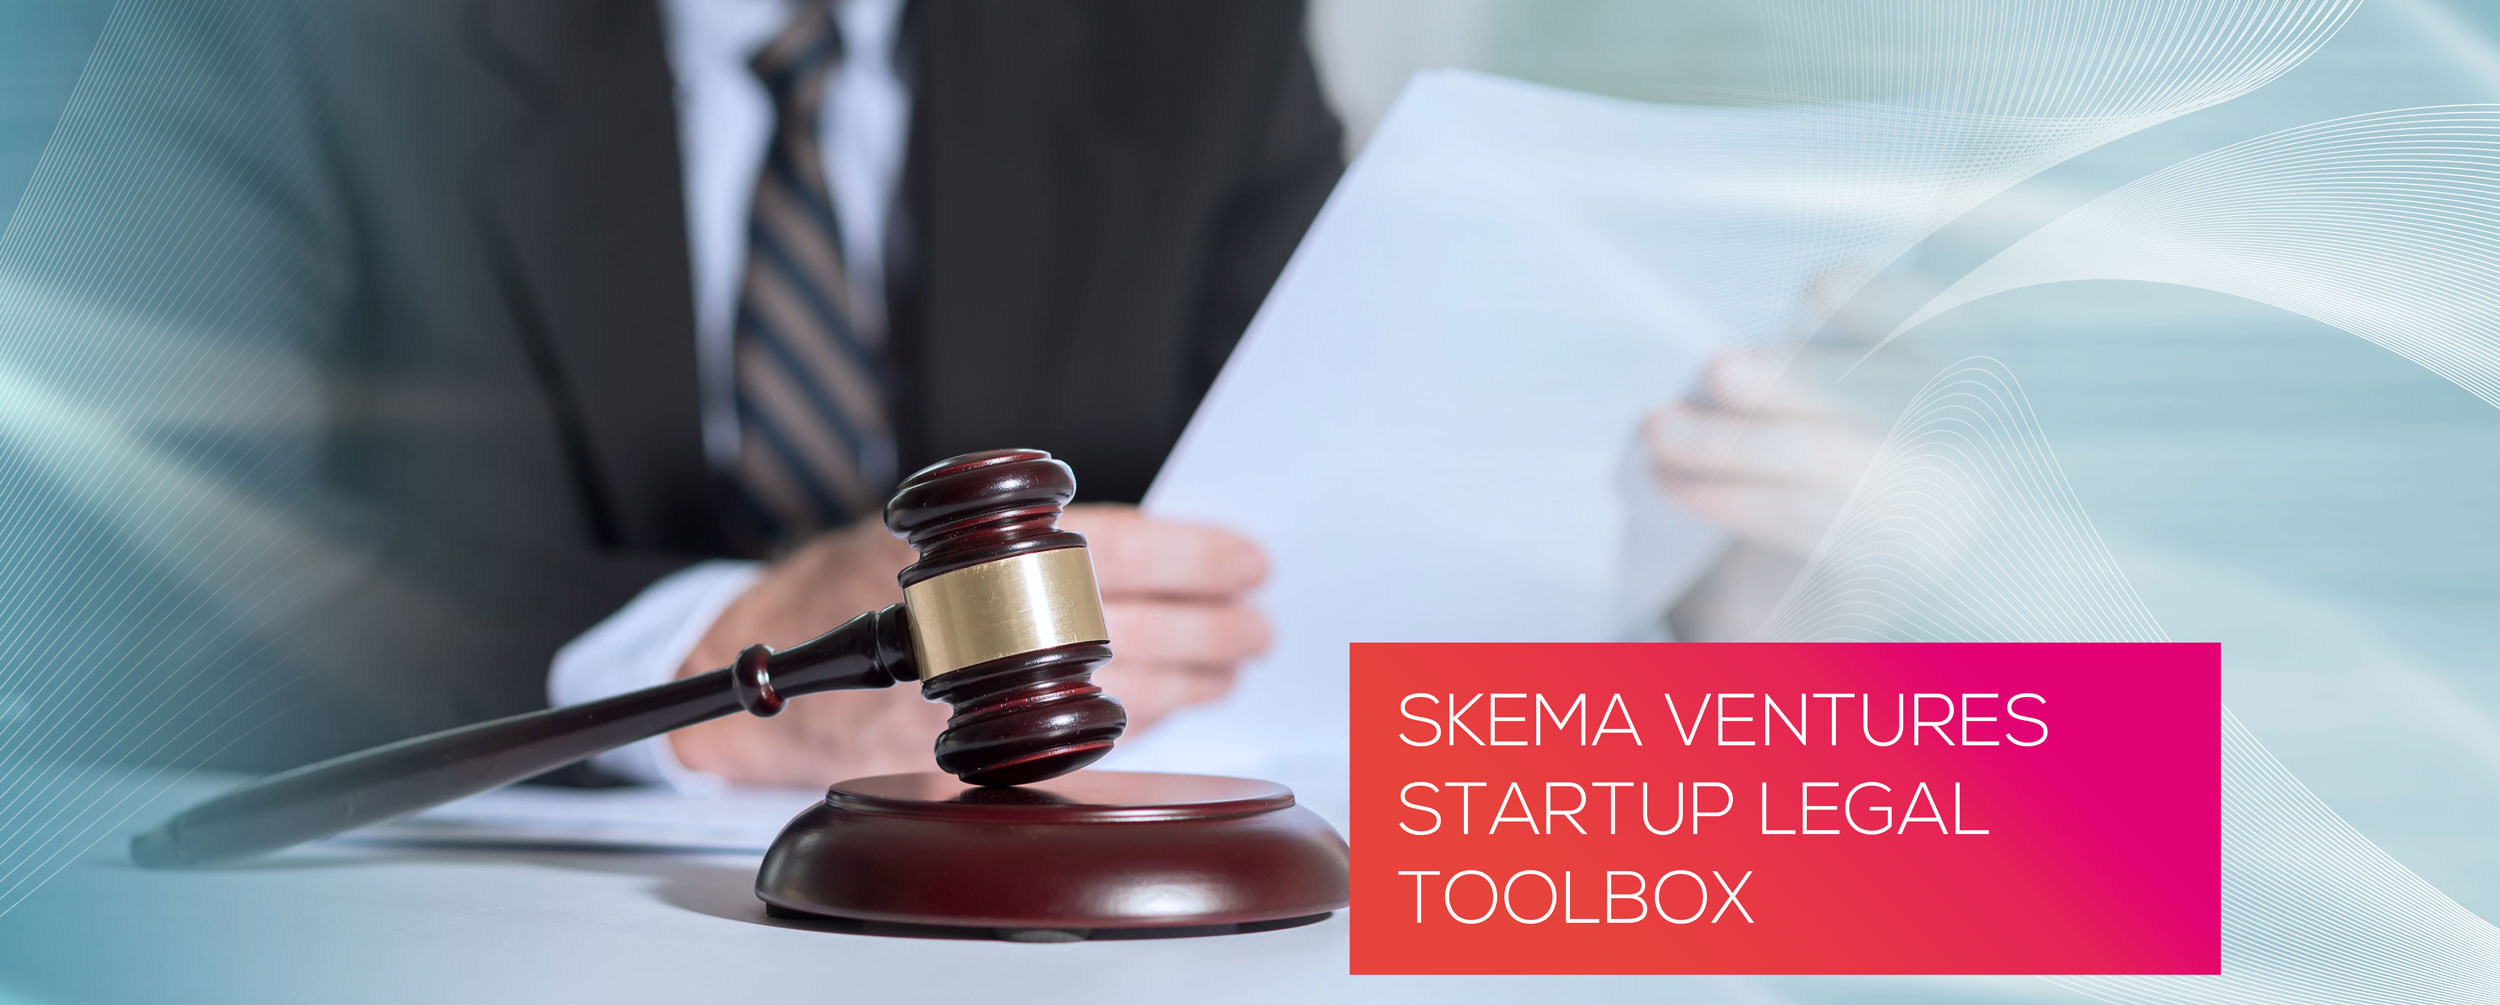 Startup legal toolbox - SKEMA Ventures-banner